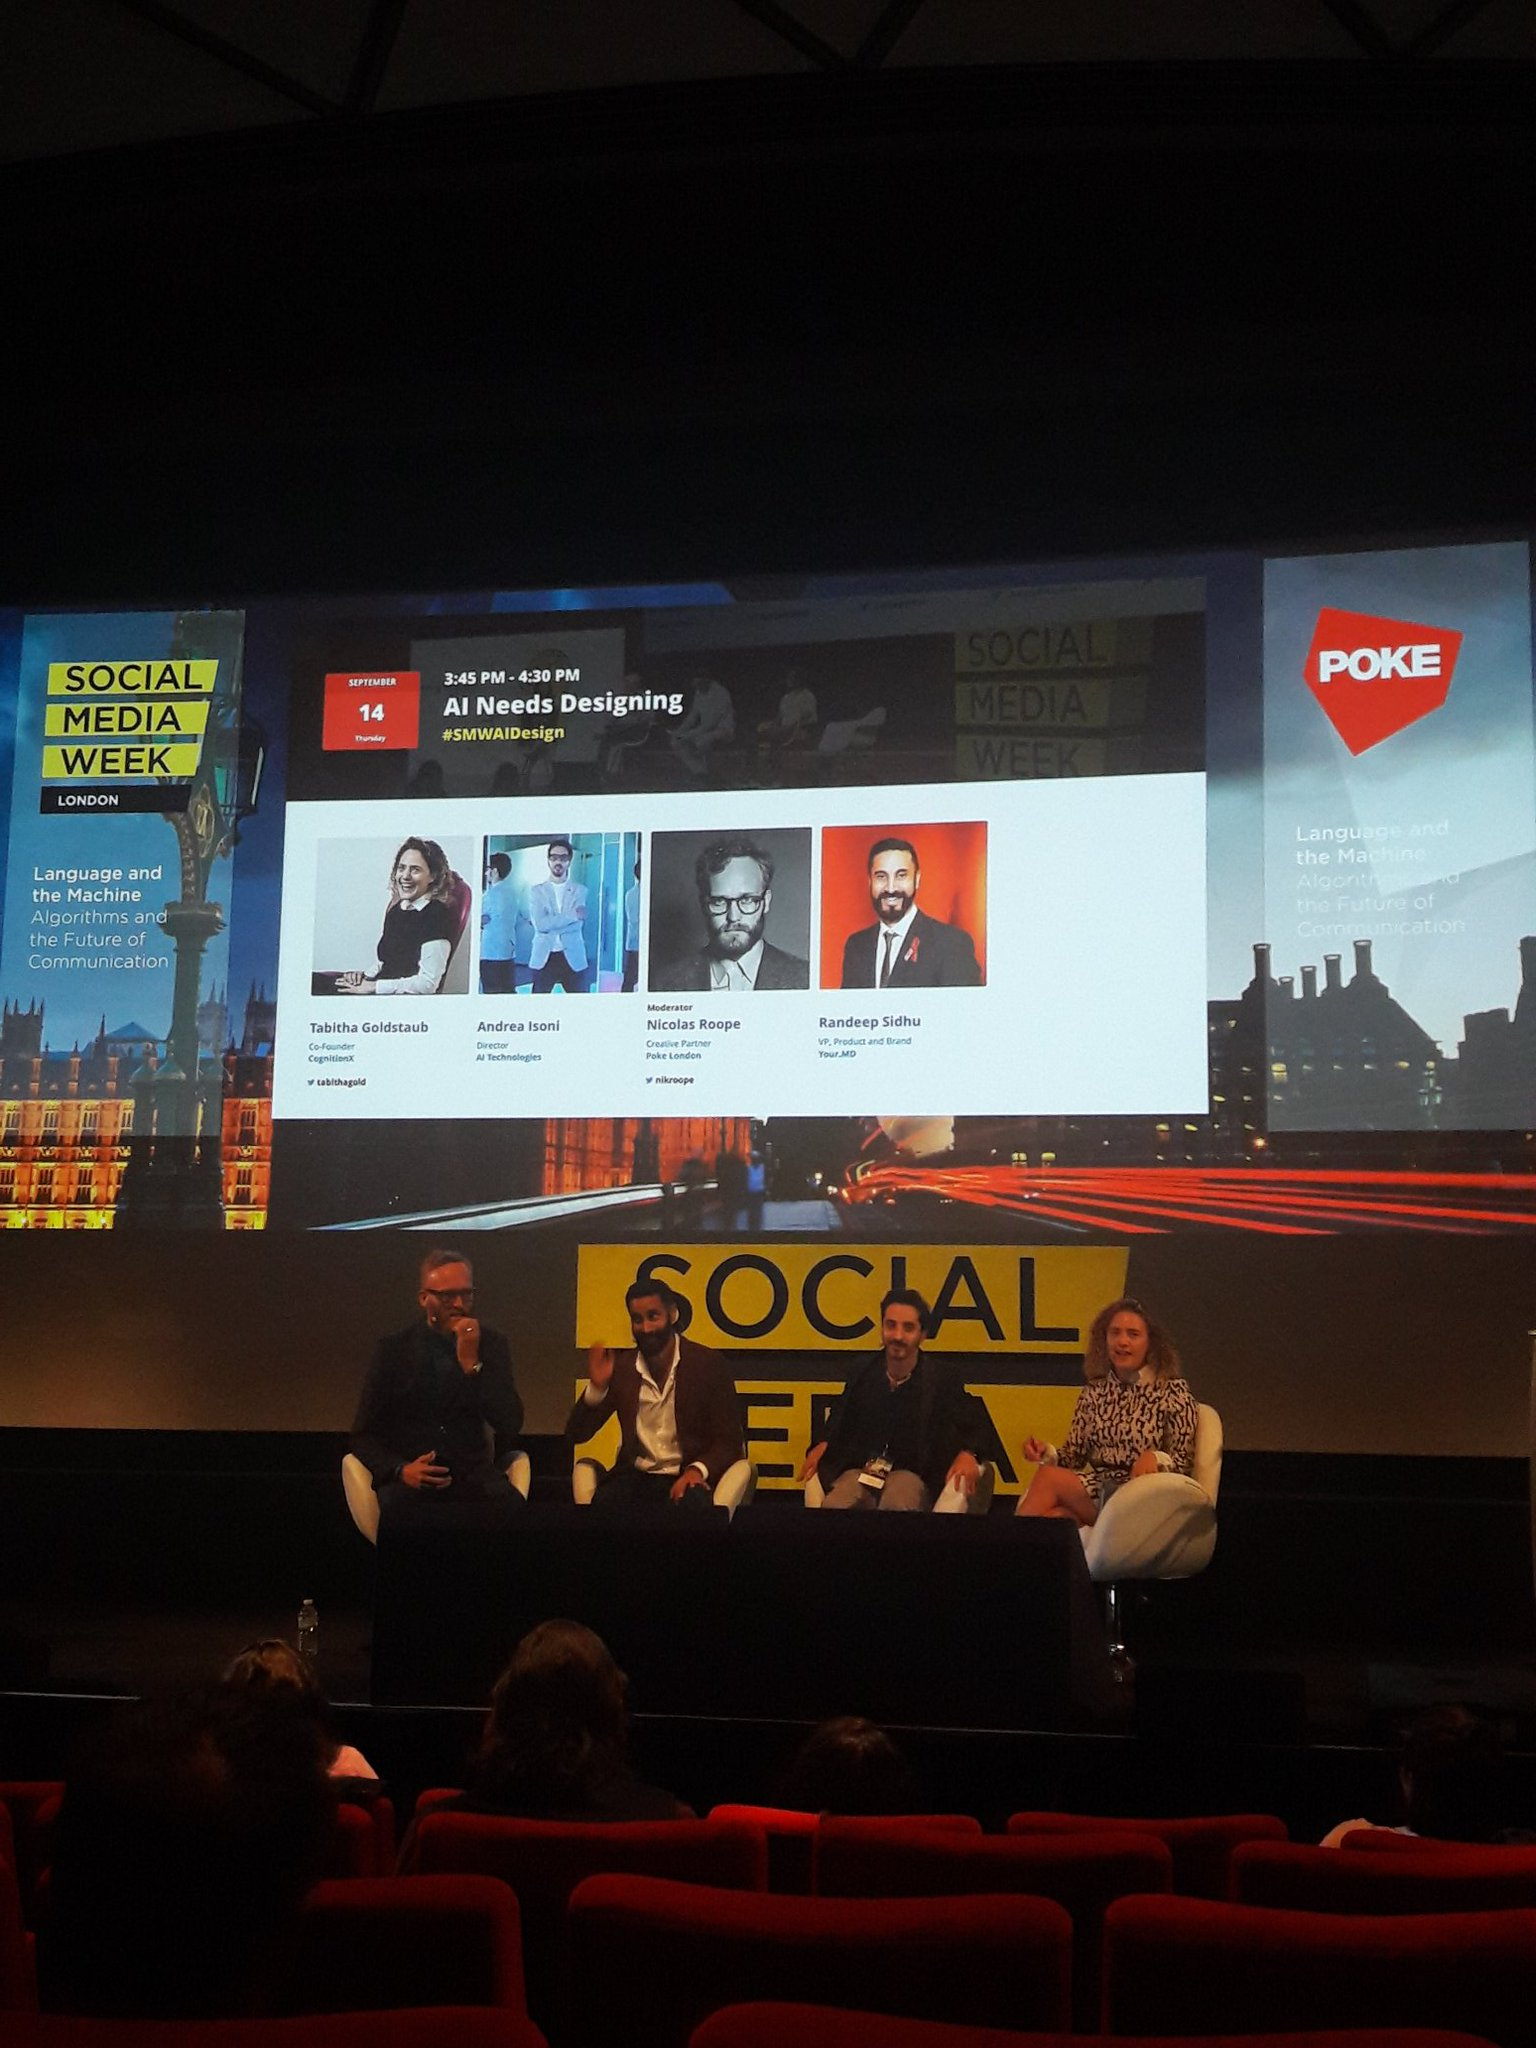 Hope some of you guys came to see us at #smwldn Great talk with @tabithagold Andrea Isoni and Randeep Sidhu https://t.co/w5cyvetQKd